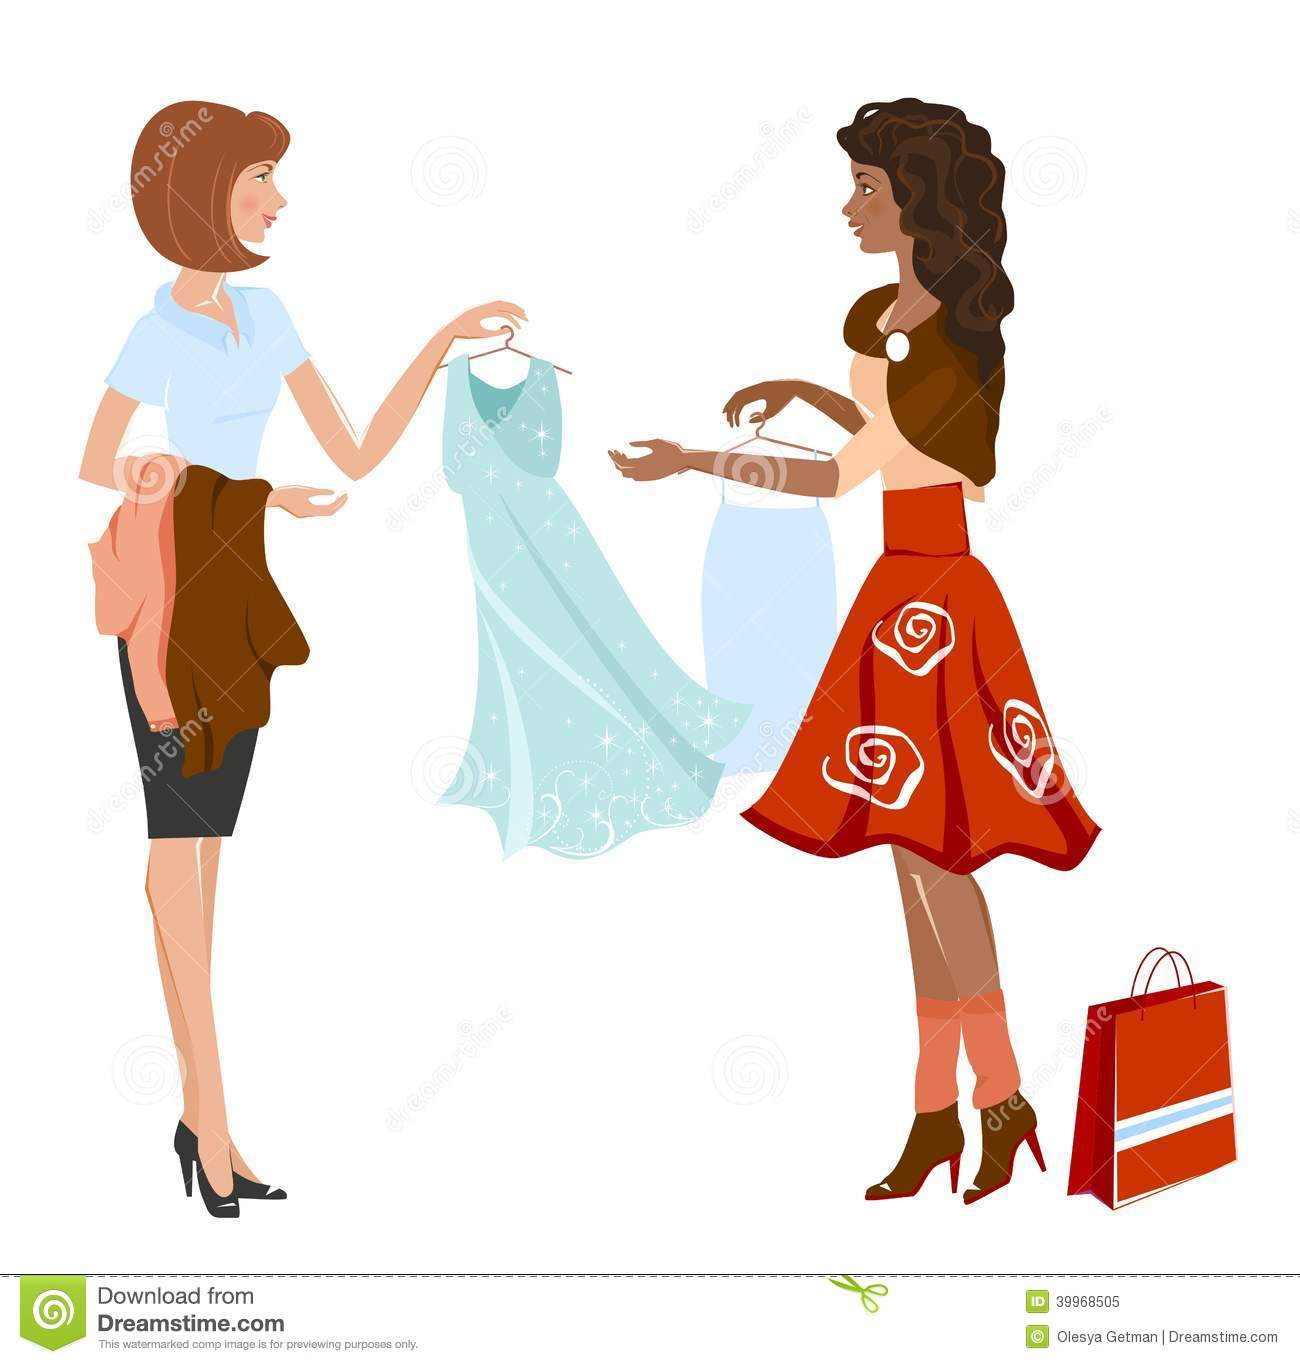 How to buy a dress for a woman